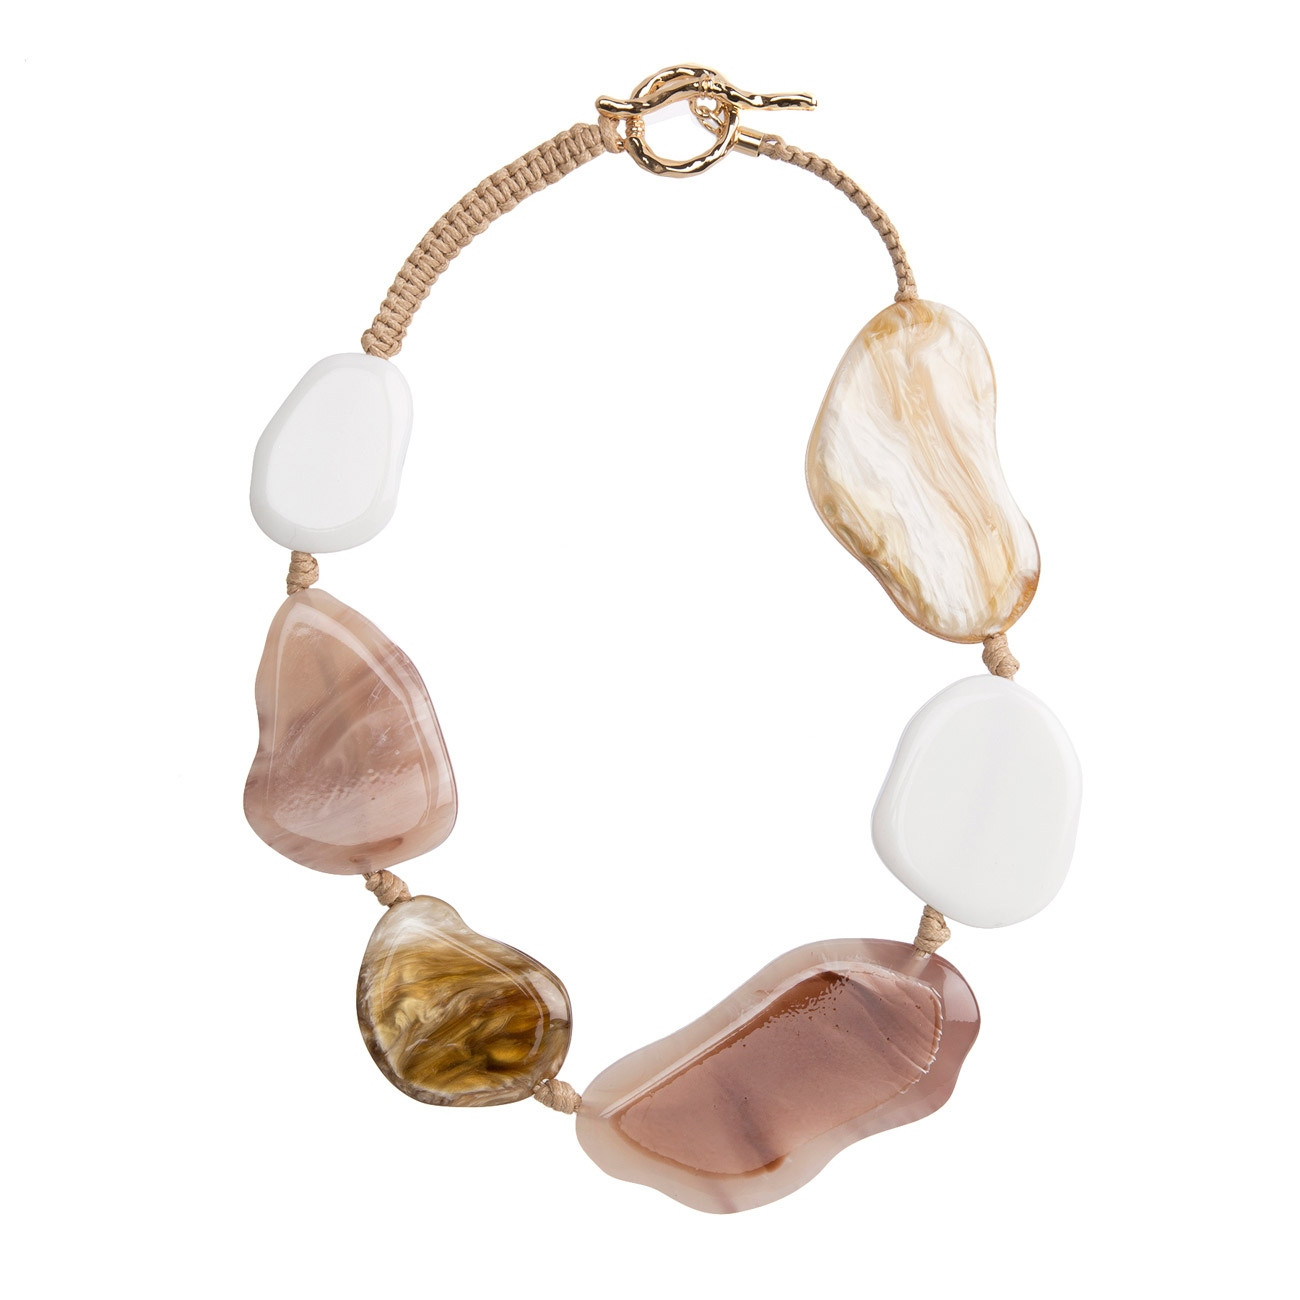 Adele Marie Flat Stones Necklace